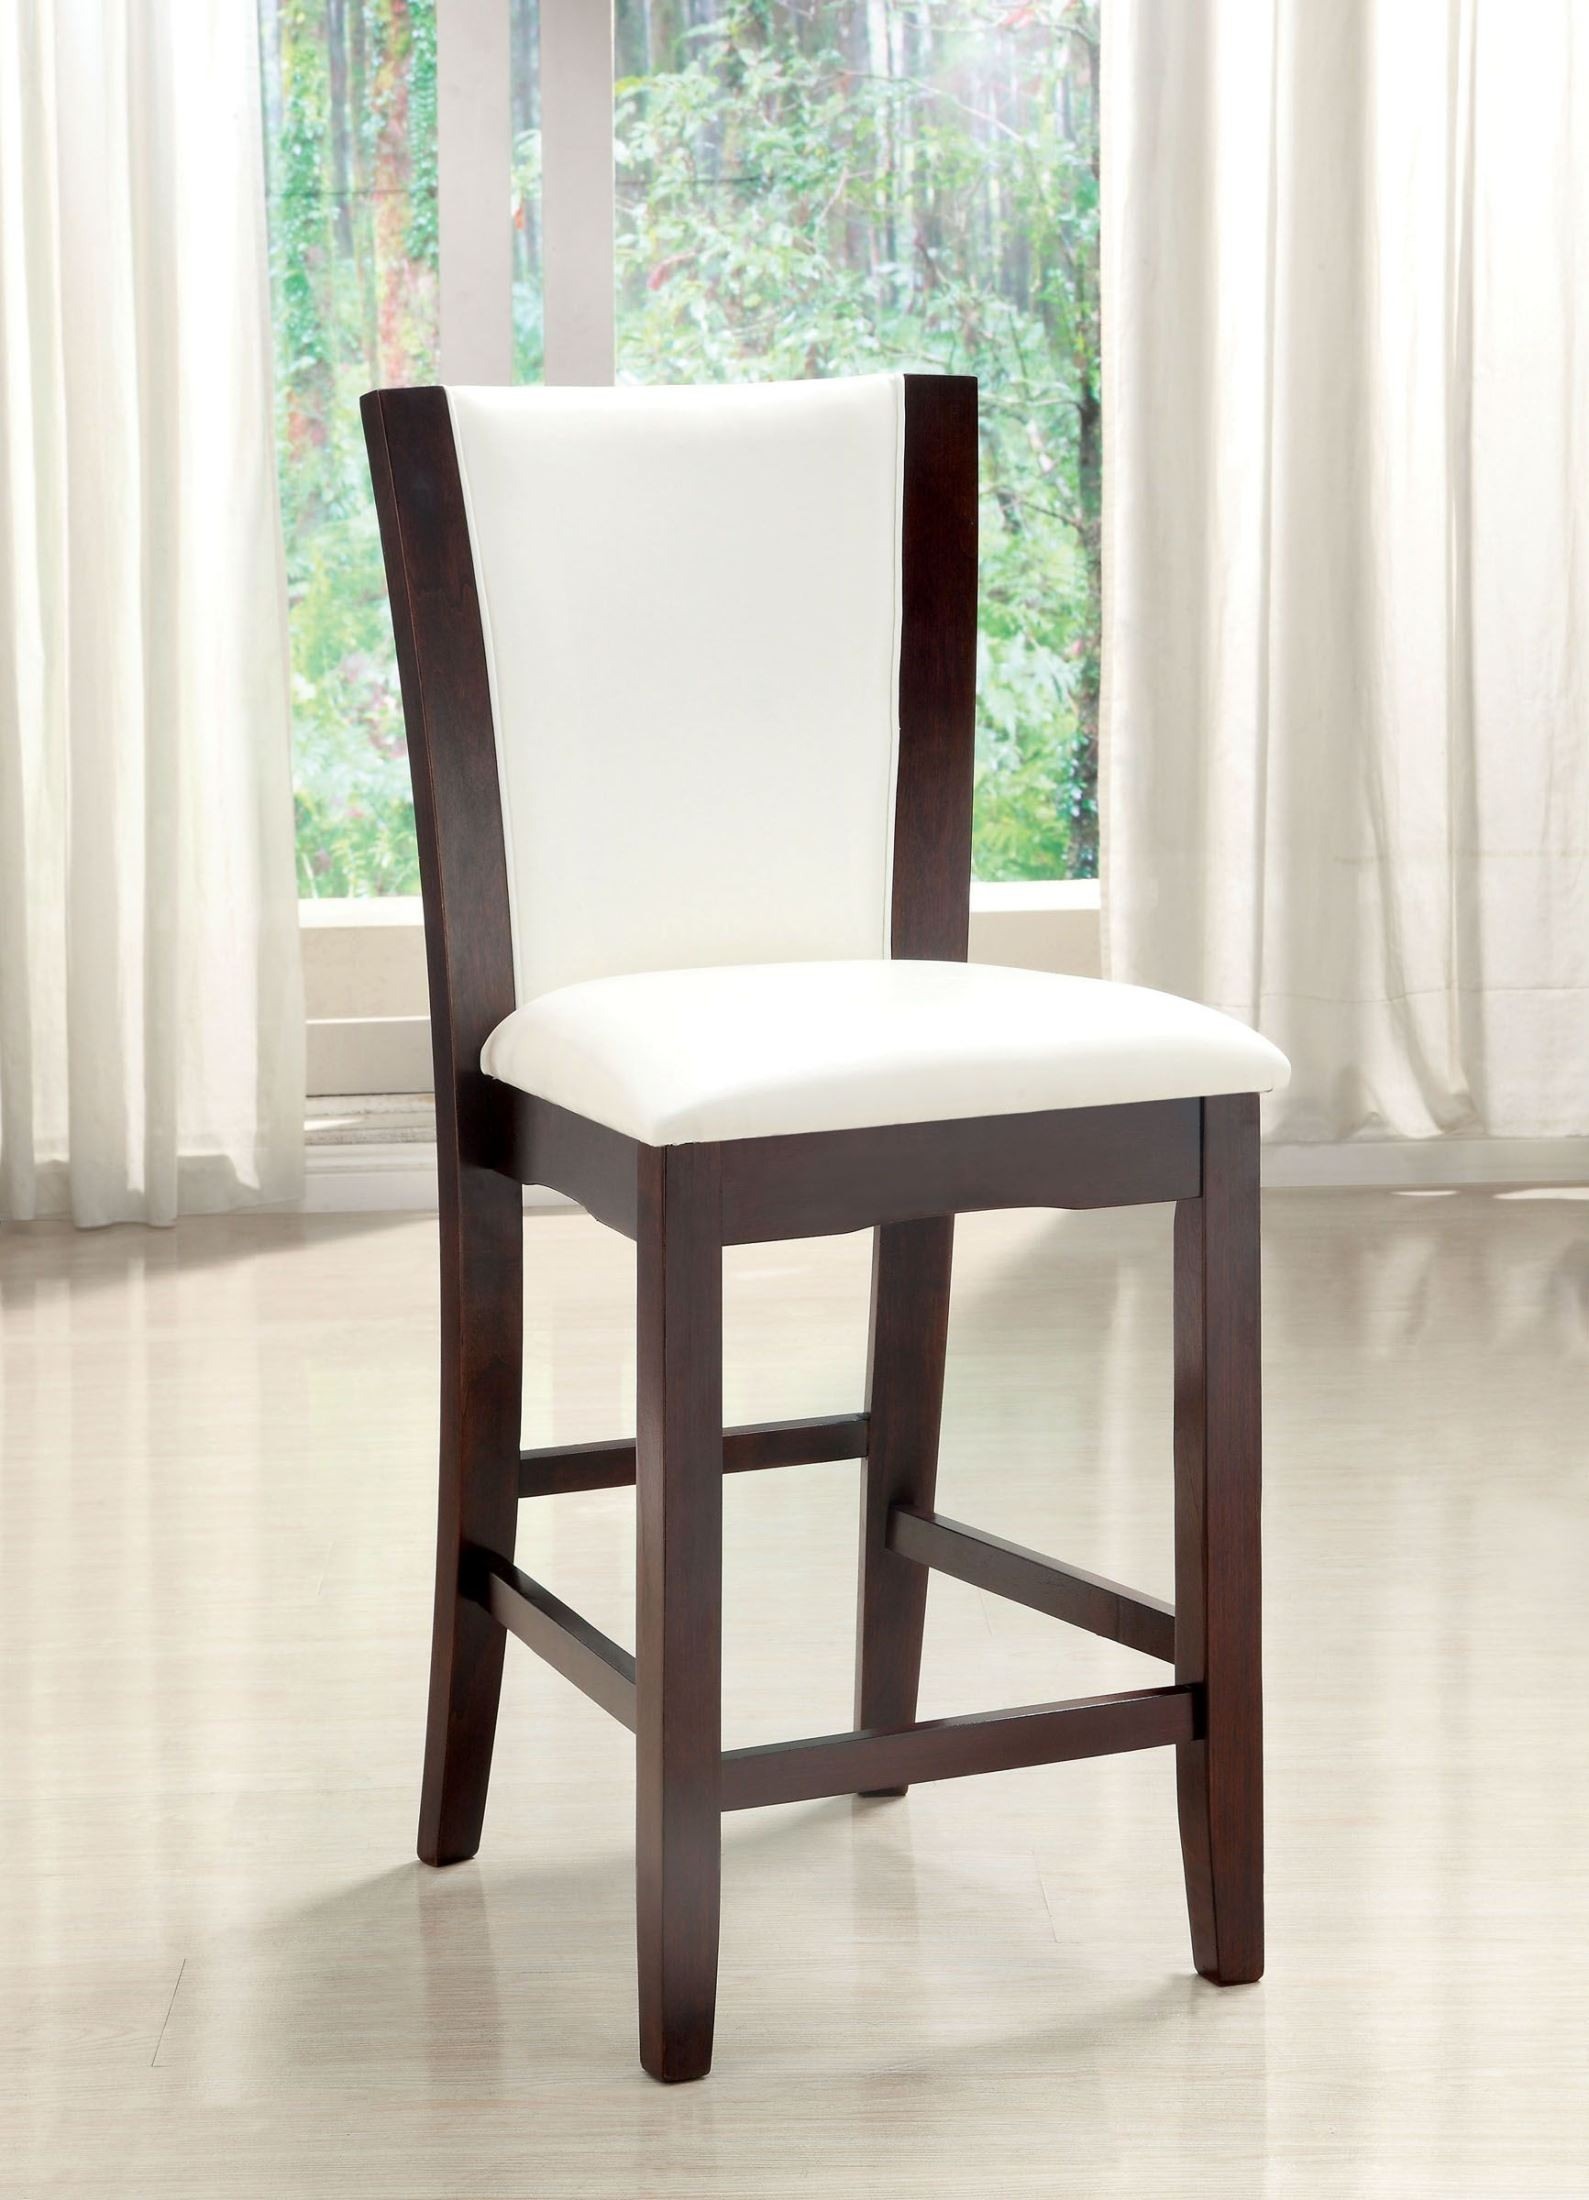 White Counter Height Chairs Manhattan Iii White Counter Height Chair Set Of 2 From